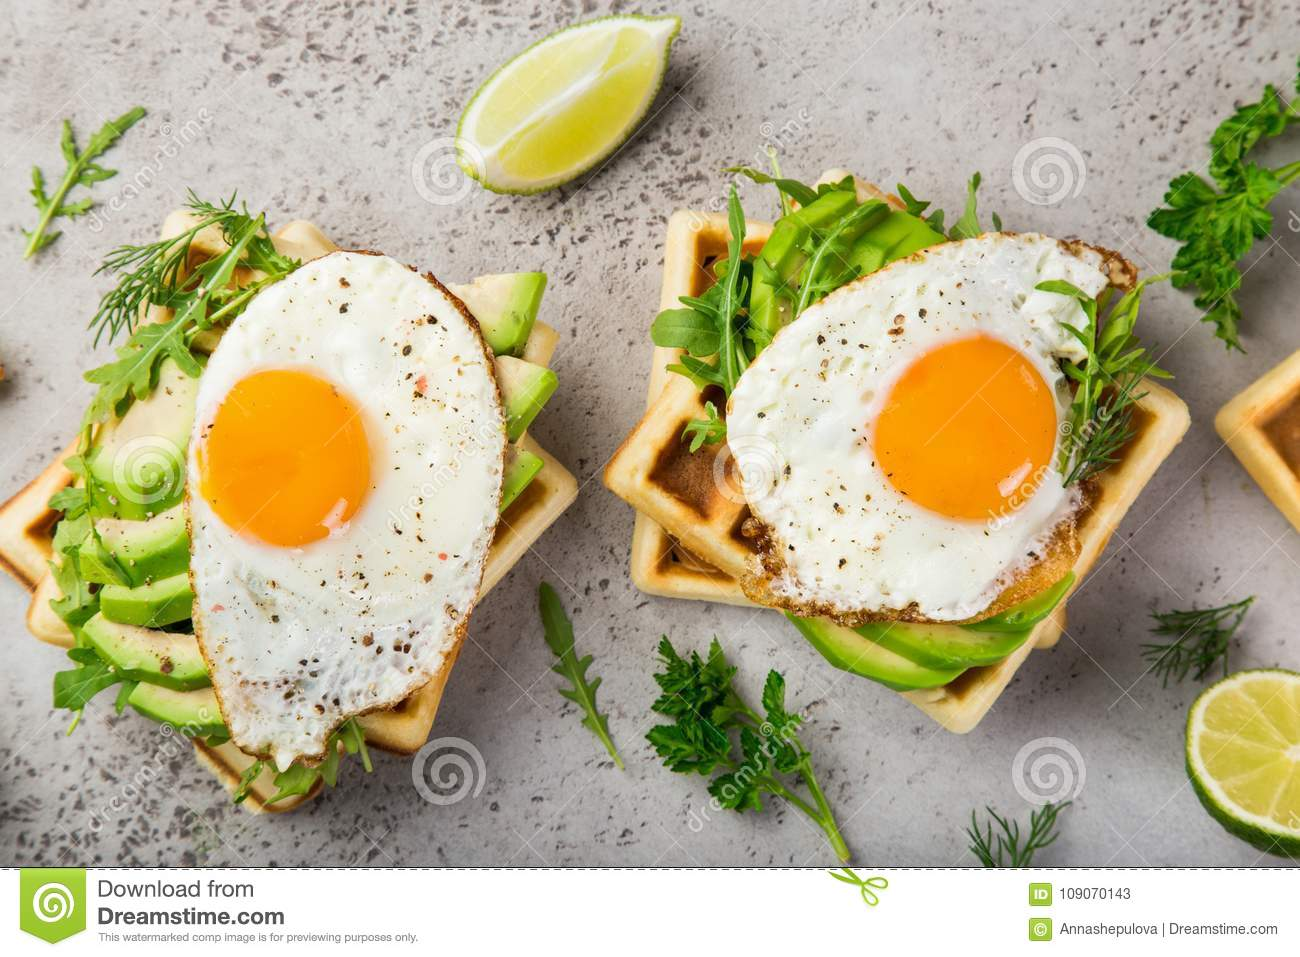 Savory waffles with avocado, arugula and fried egg for breakfast